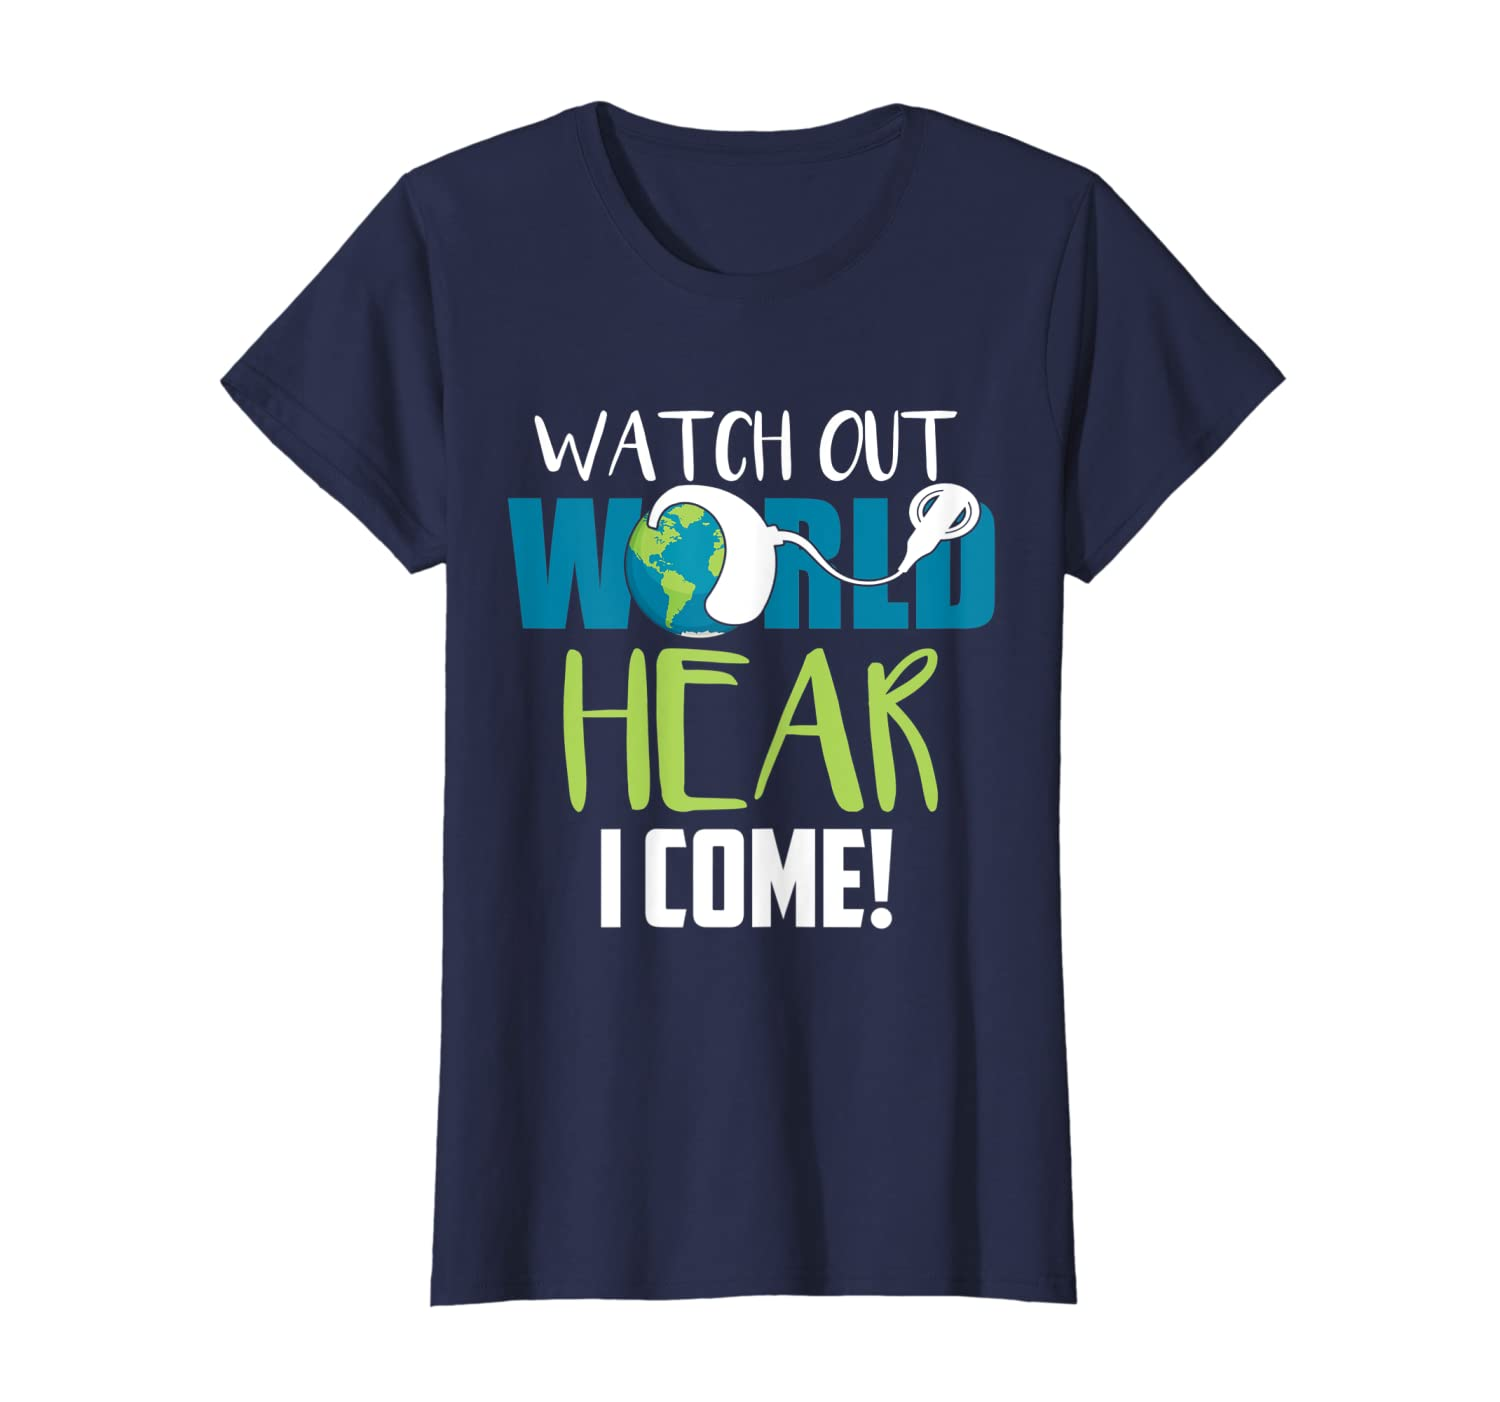 Hear I Come T-Shirt For Cochlear Implant Awareness Tee